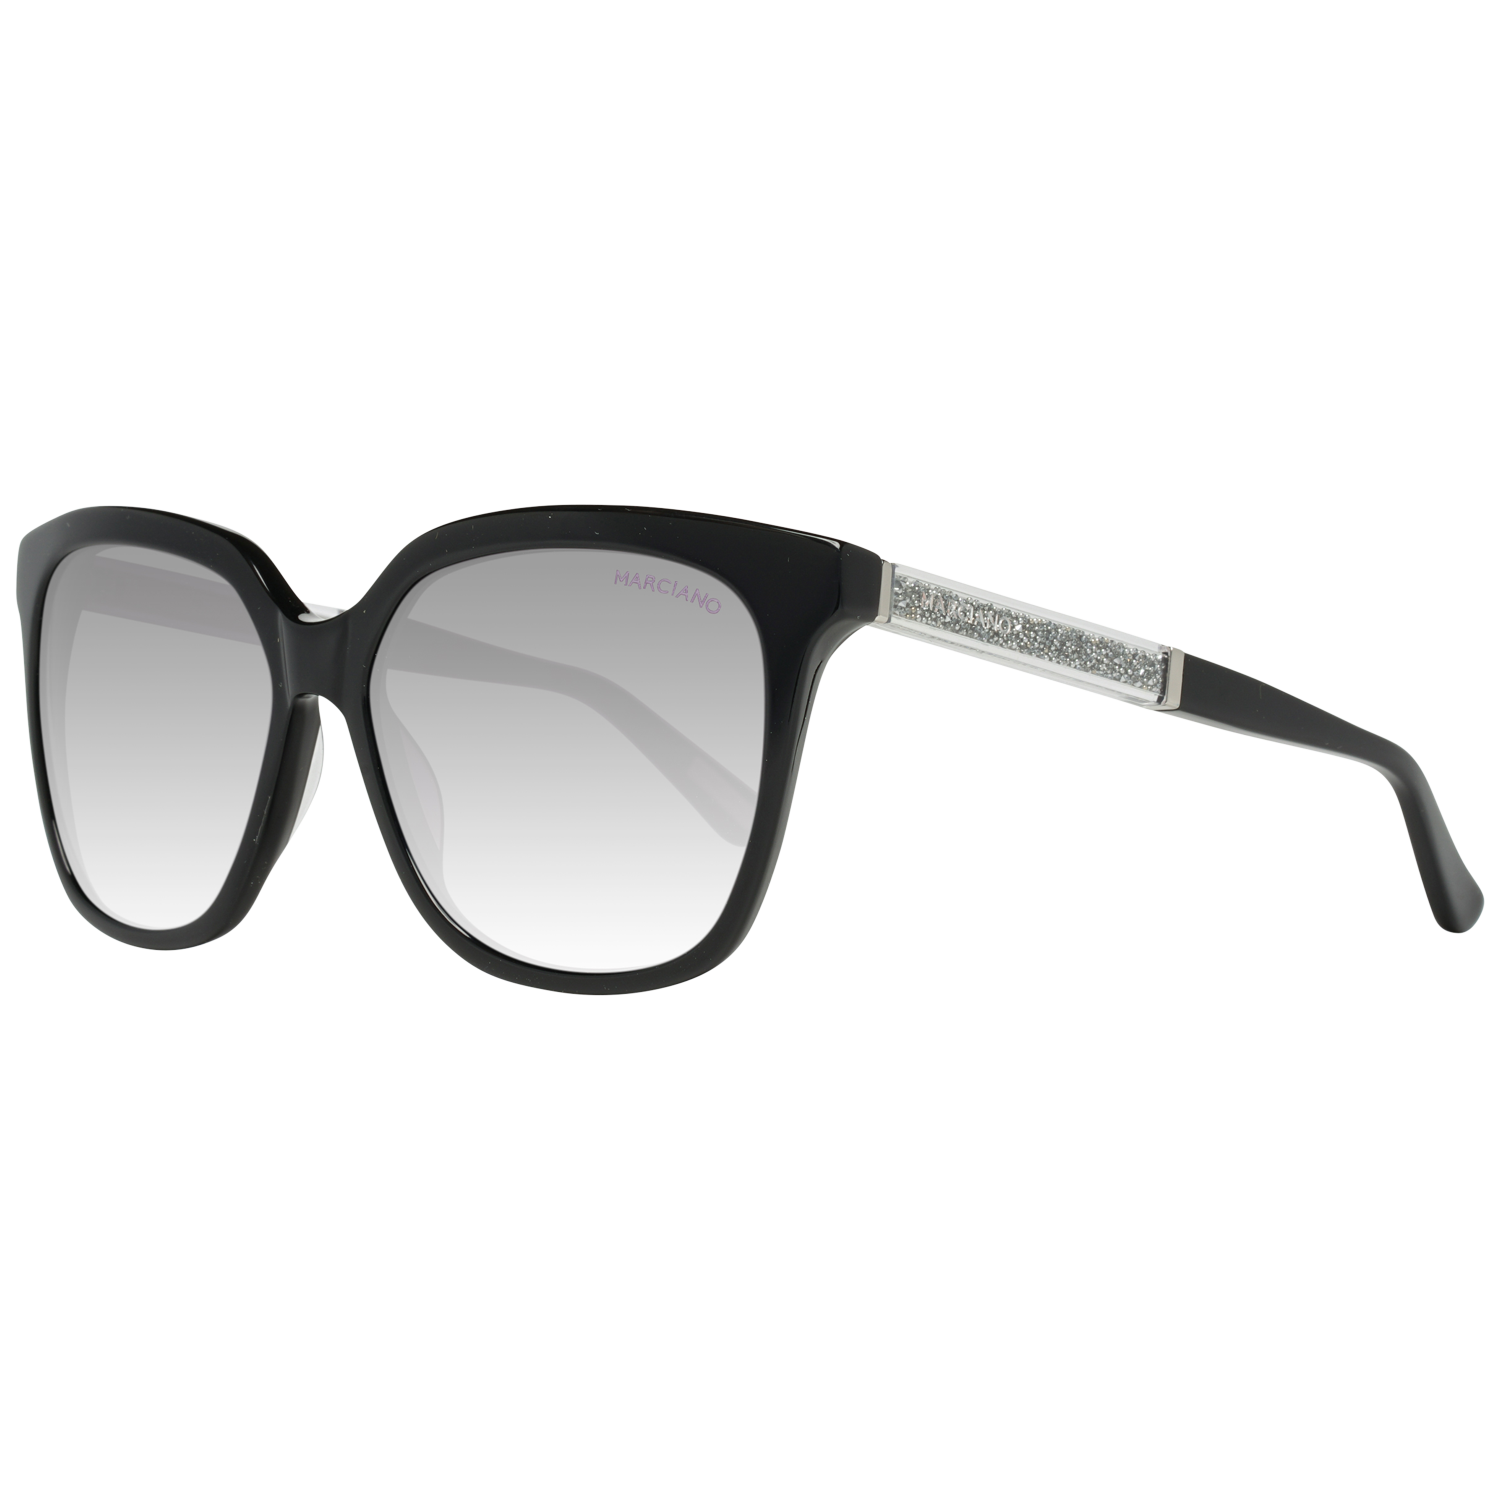 Guess by Marciano Sunglasses GM0769 01B 54 Black